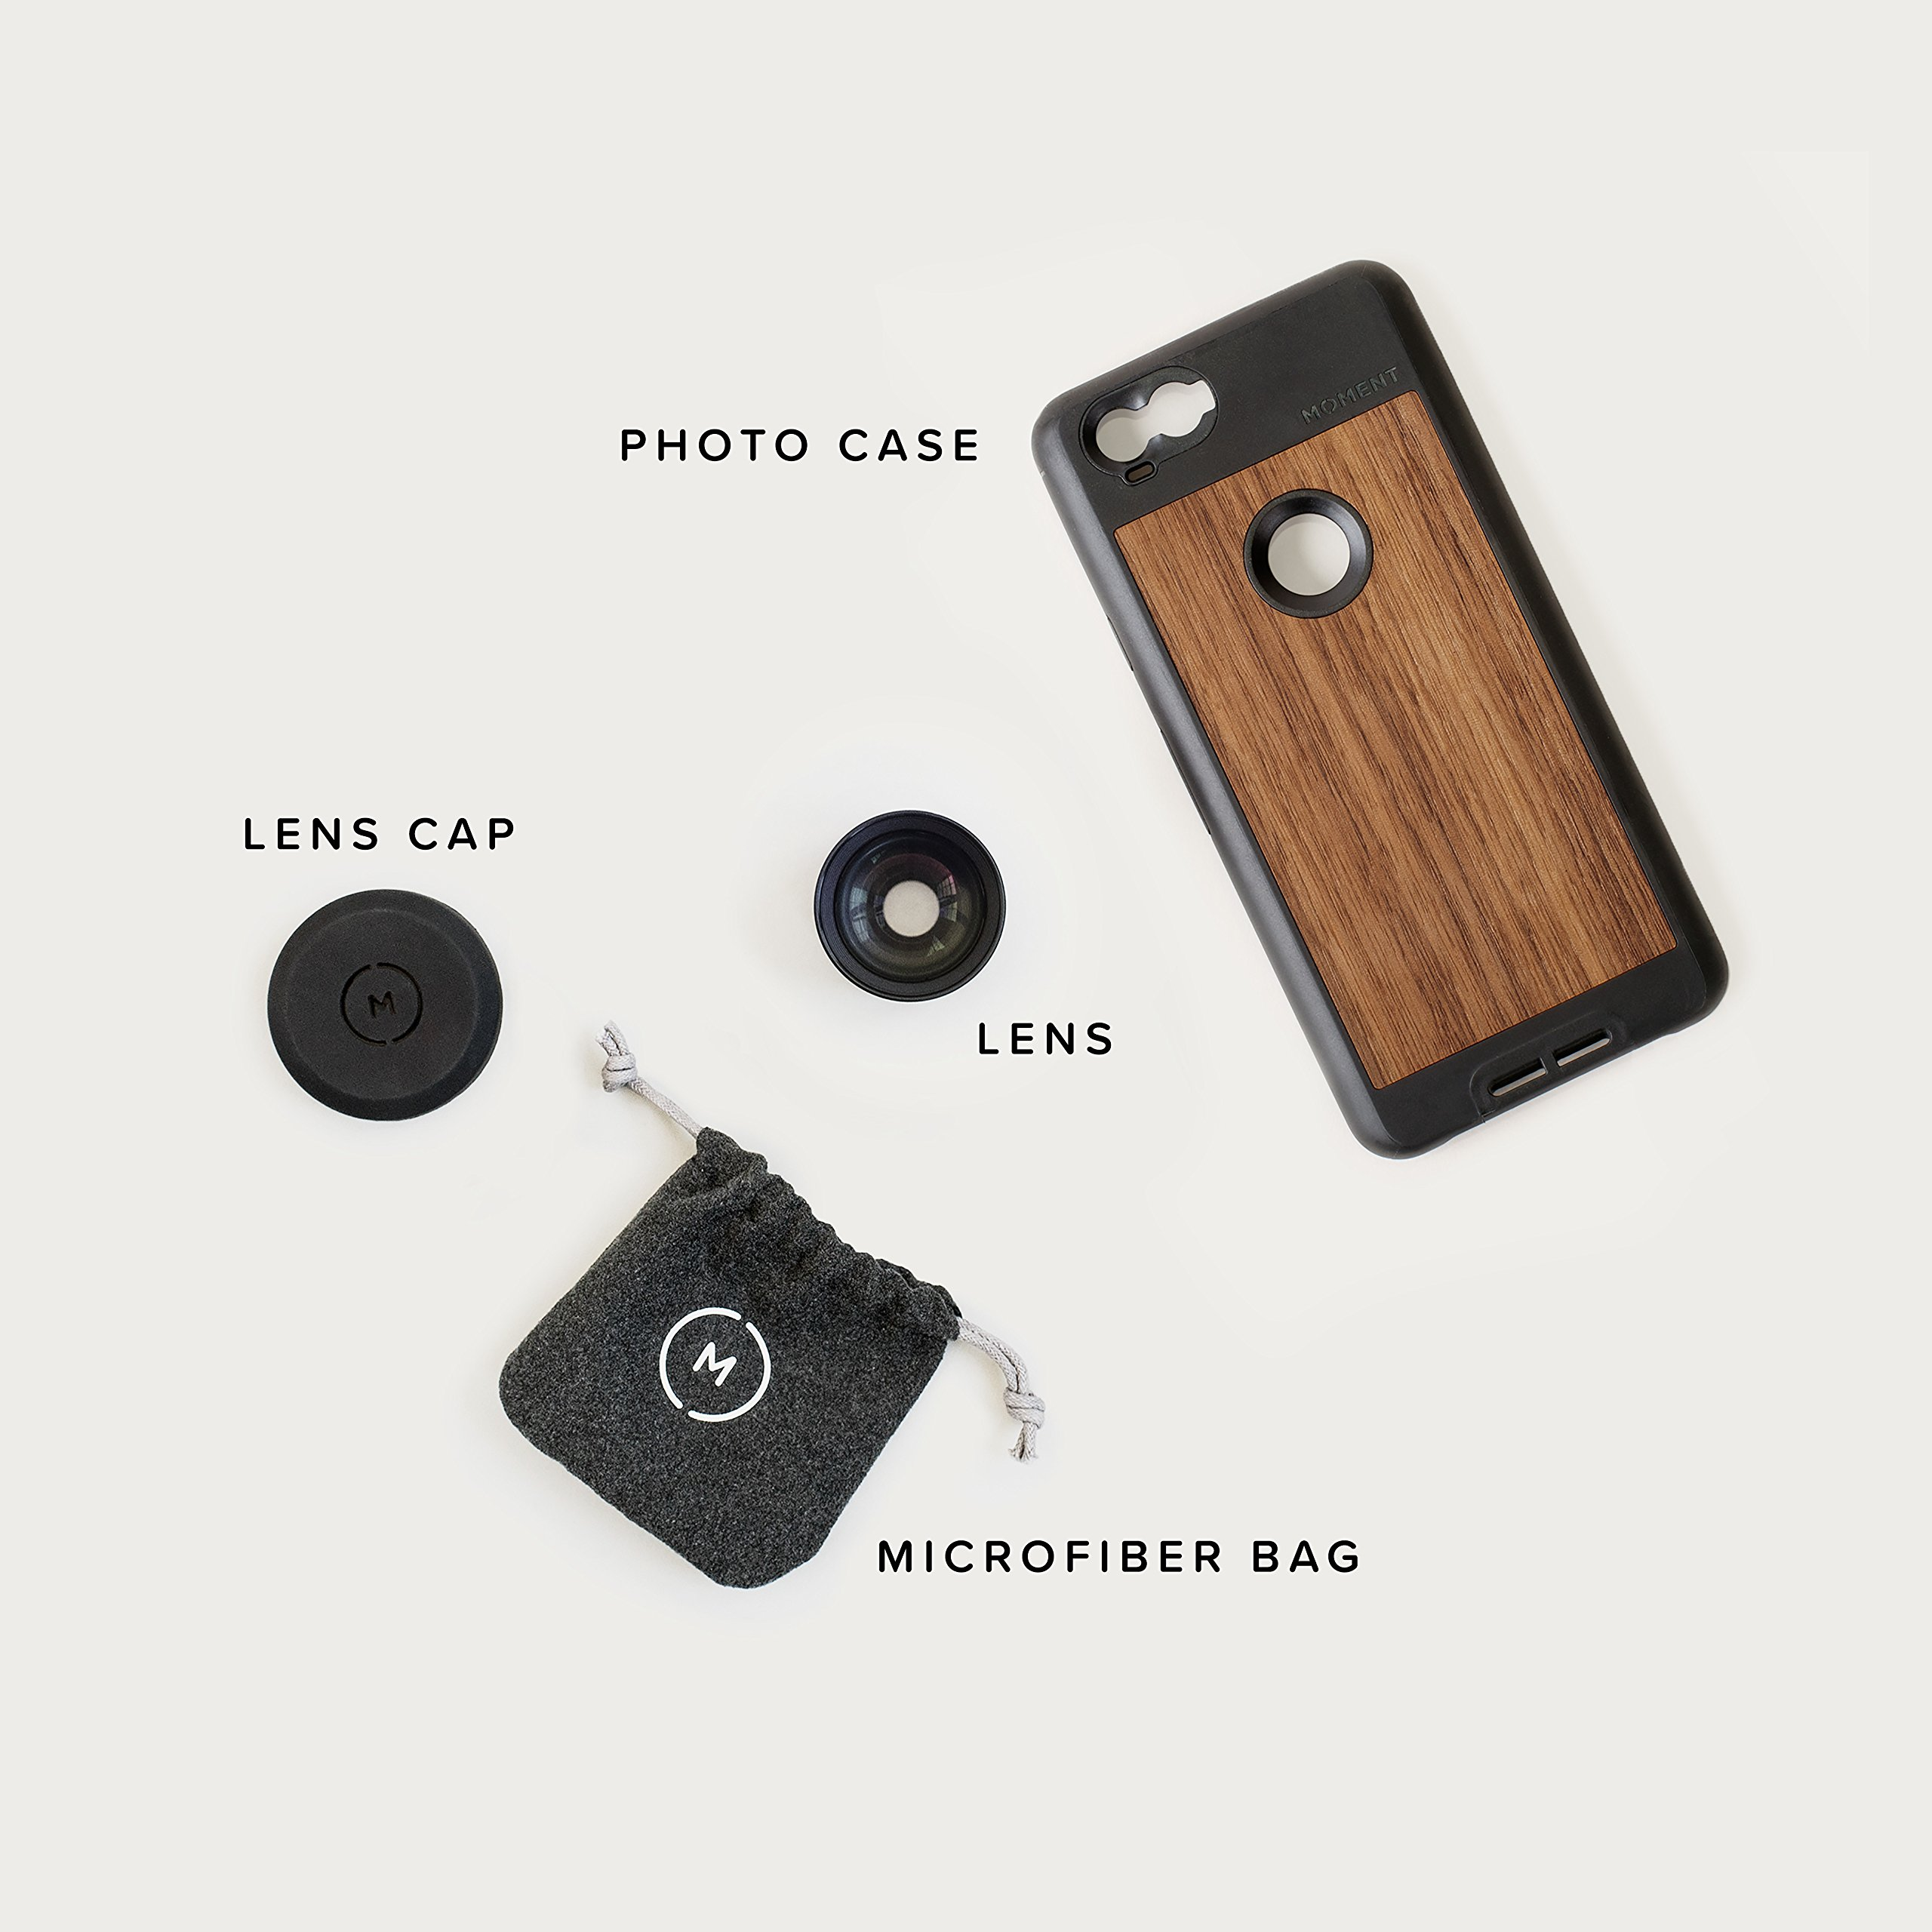 Pixel 2 Case with Telephoto Lens Kit || Moment Black Canvas Photo Case plus Tele Lens || Best google zoom attachment lens with thin protective case. by Moment (Image #7)